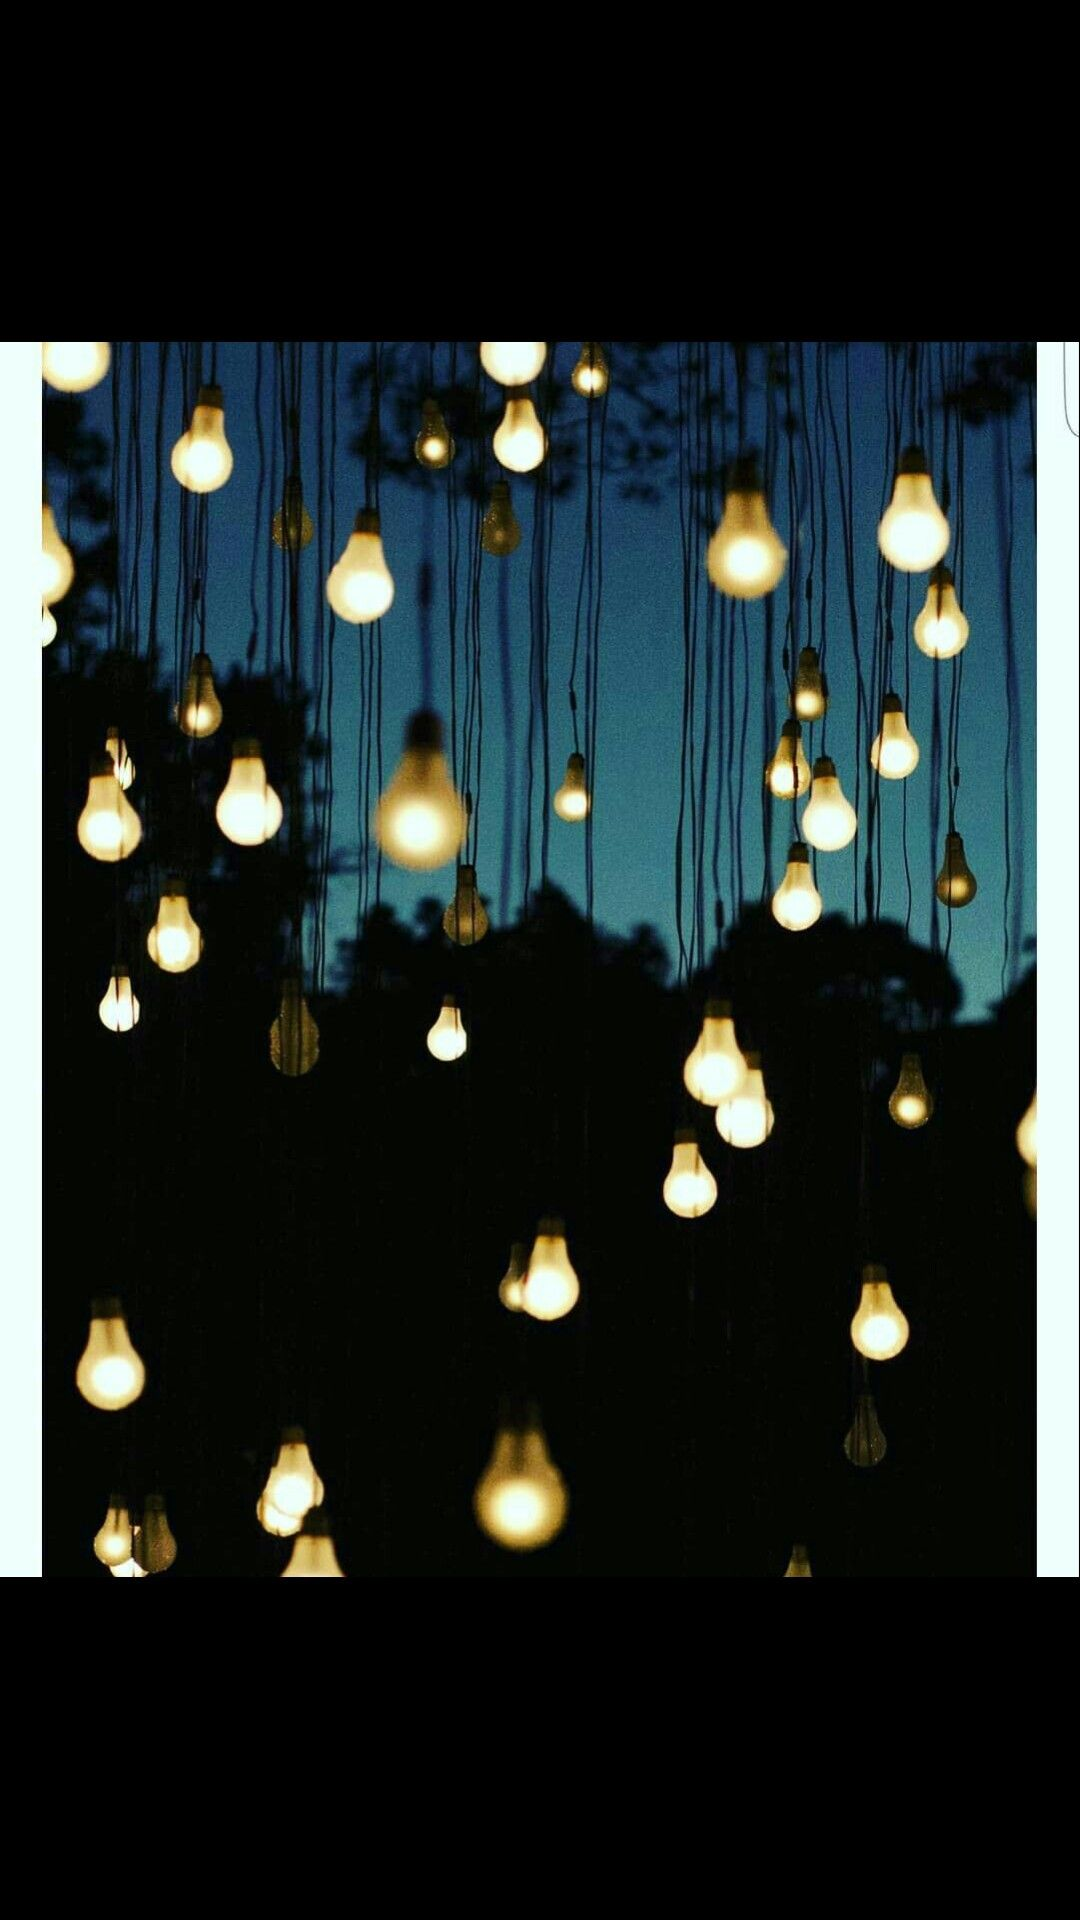 Pin by Anika on ⭐wallpaper⭐ Light art installation